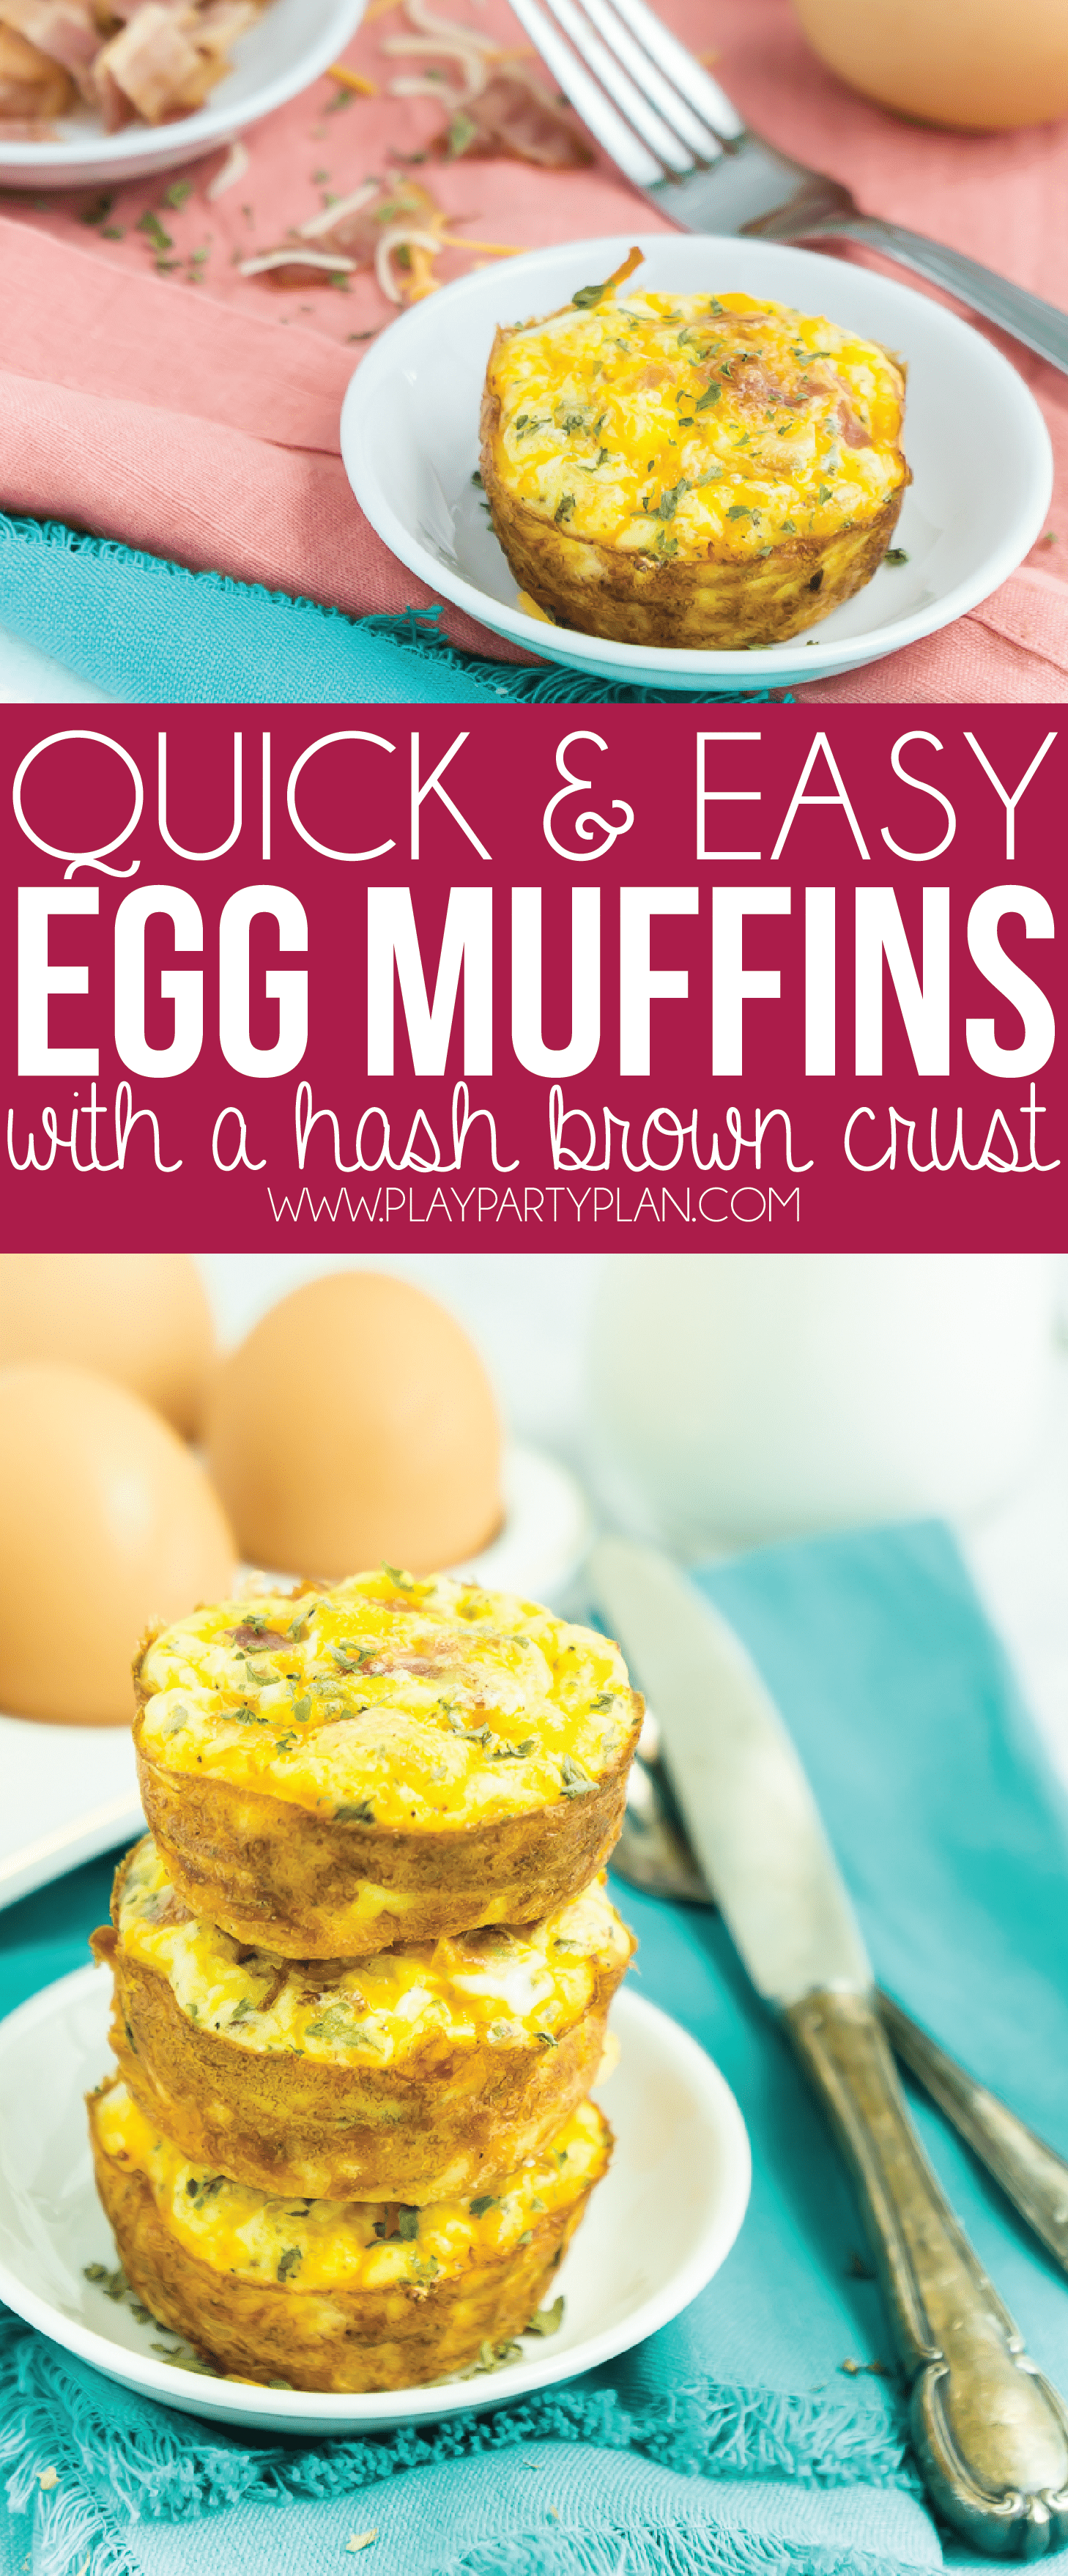 These egg muffins with a hashbrown crust are the perfect make ahead breakfast! Just fill them with bacon or sausage, bake, and pop in the freezer and reheat during the week. So easy! Want to make a low carb version that works for Keto or Whole 30? Simply take out the hash brown crust! via @playpartyplan